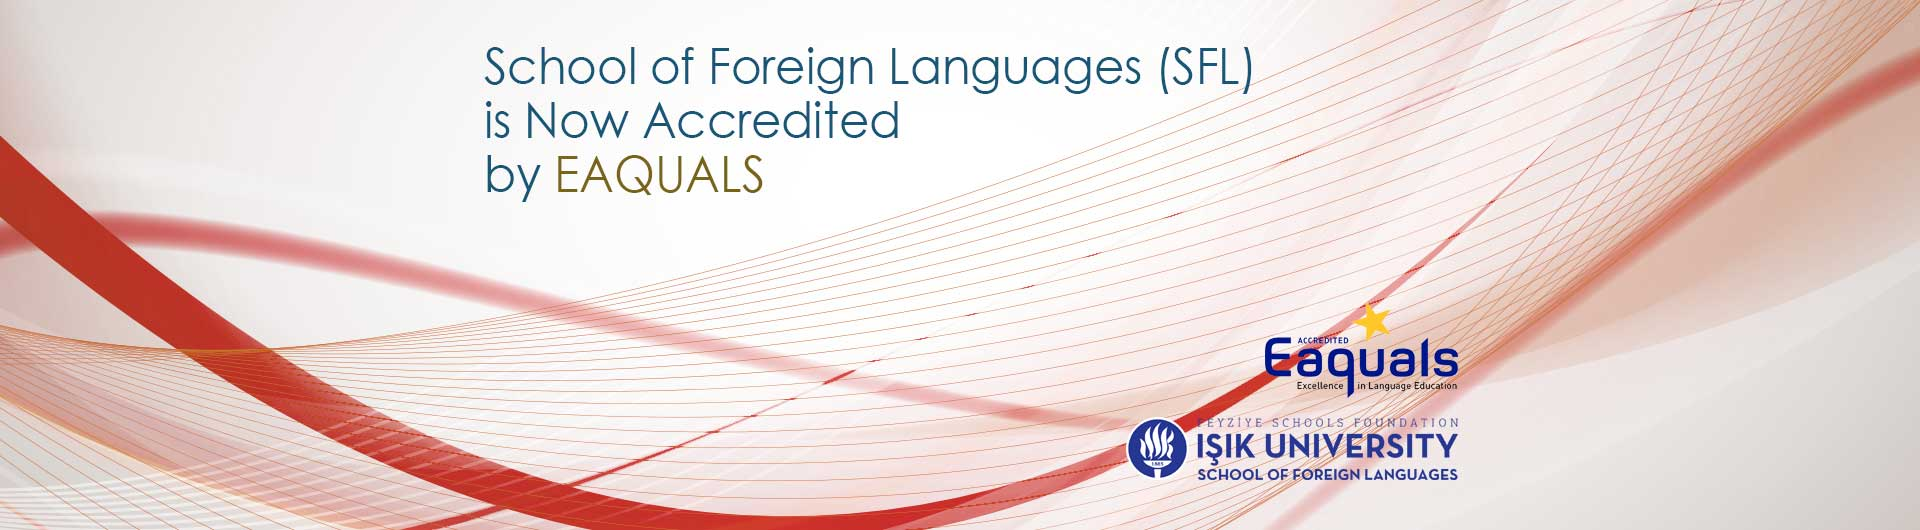 School of Foreign Languages (SFL) is Now Accredited by EAQUALS